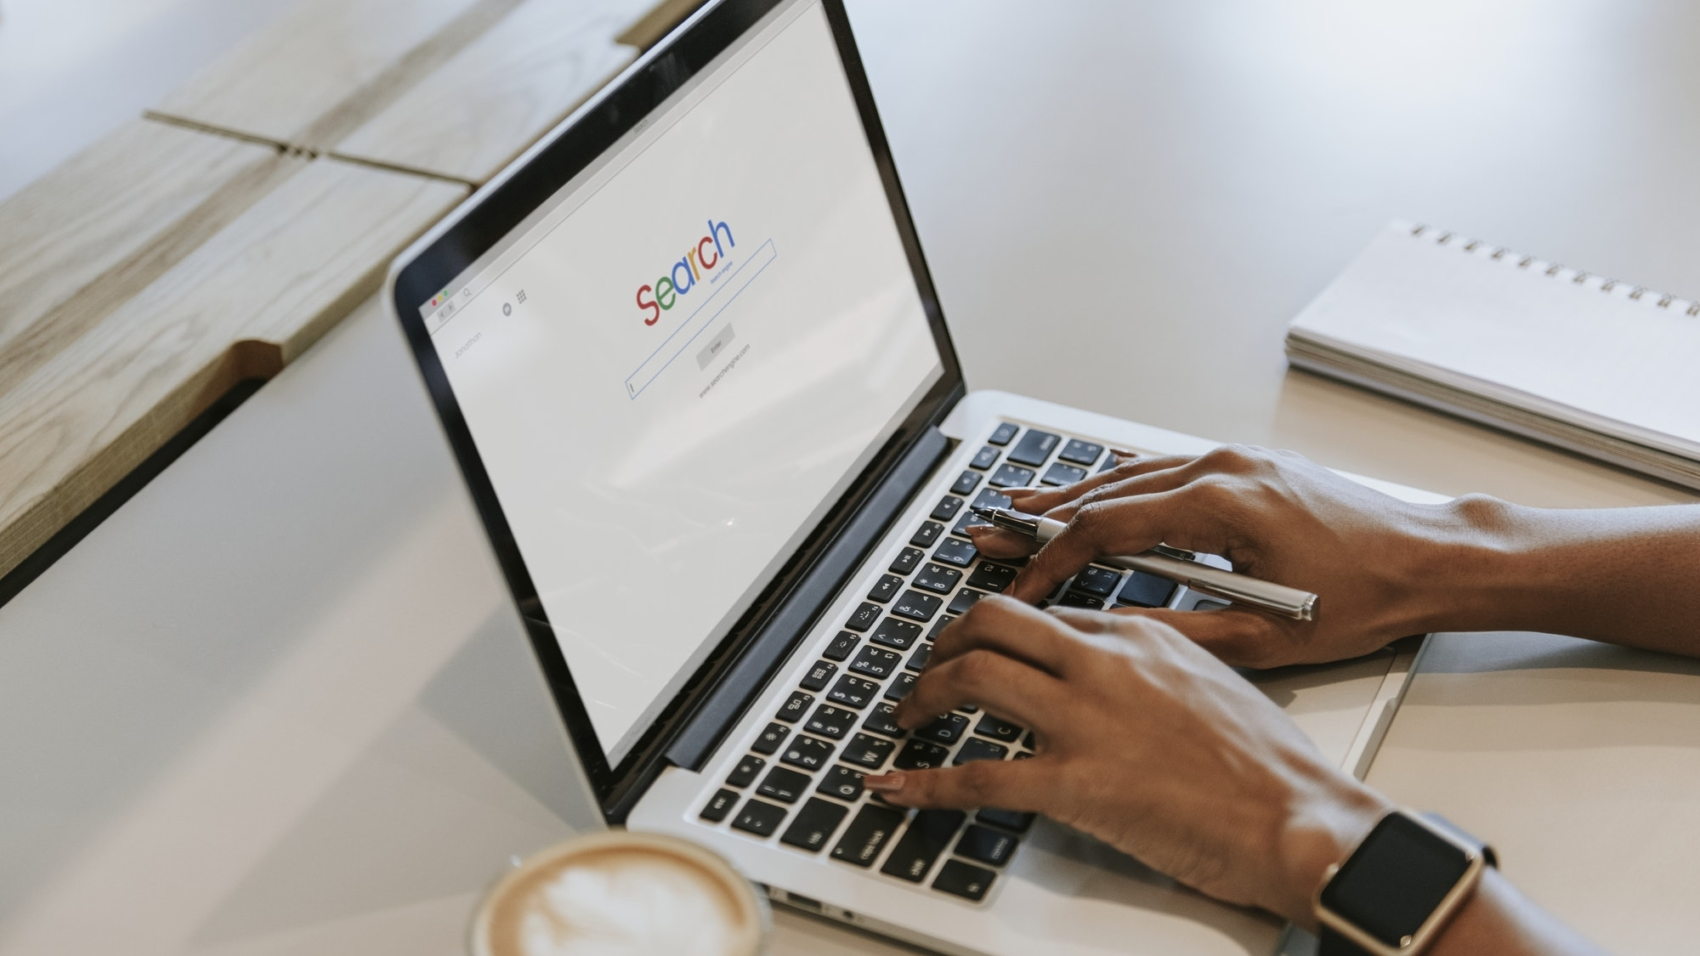 Search engine on a computer